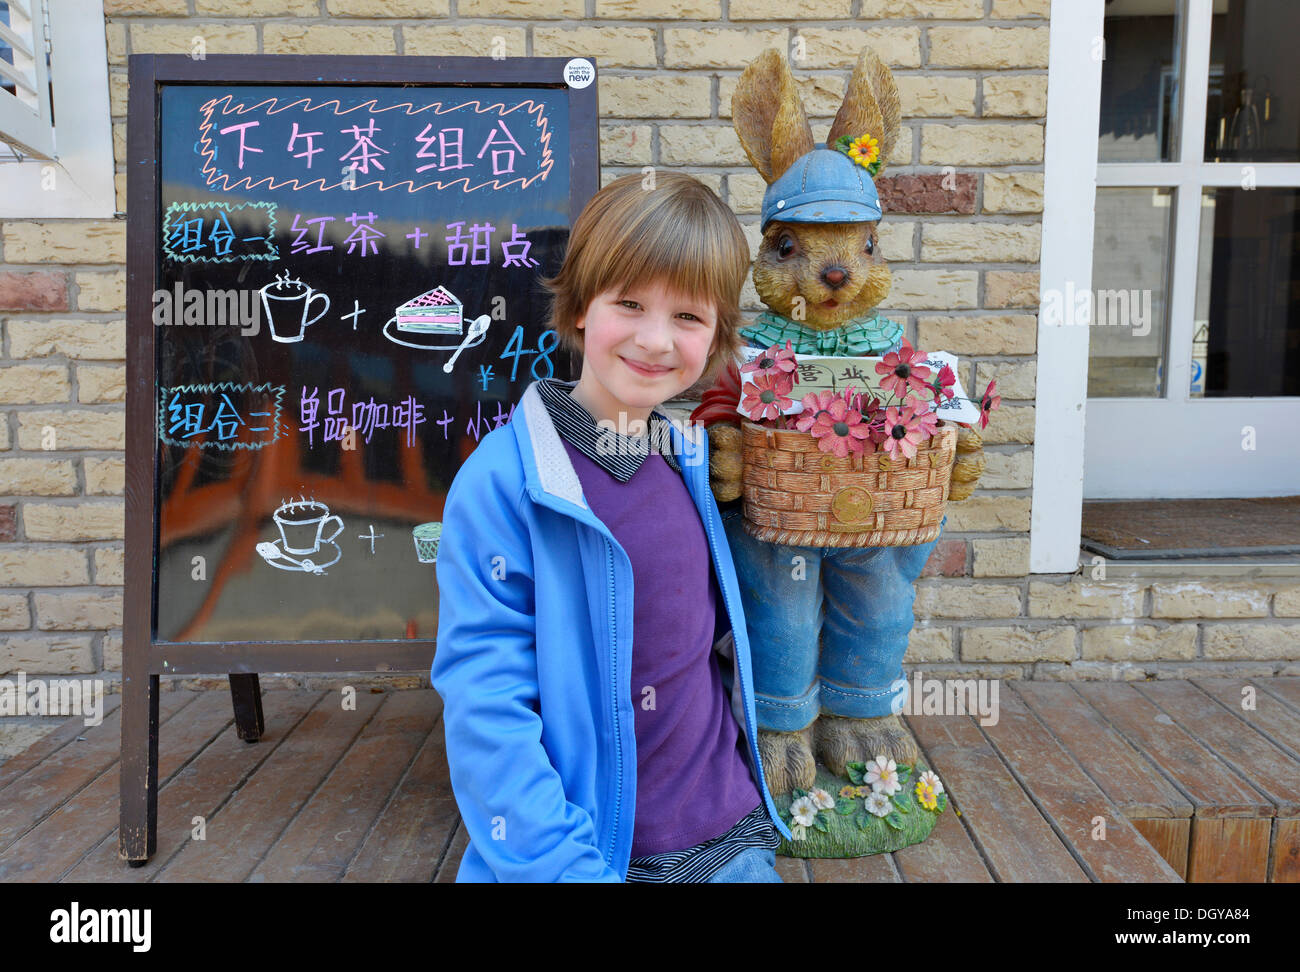 Girl, 6, in front of the Easter bunny in an old traditional hutong, a traditional residential courtyard, in Beijing, China, Asia - Stock Image